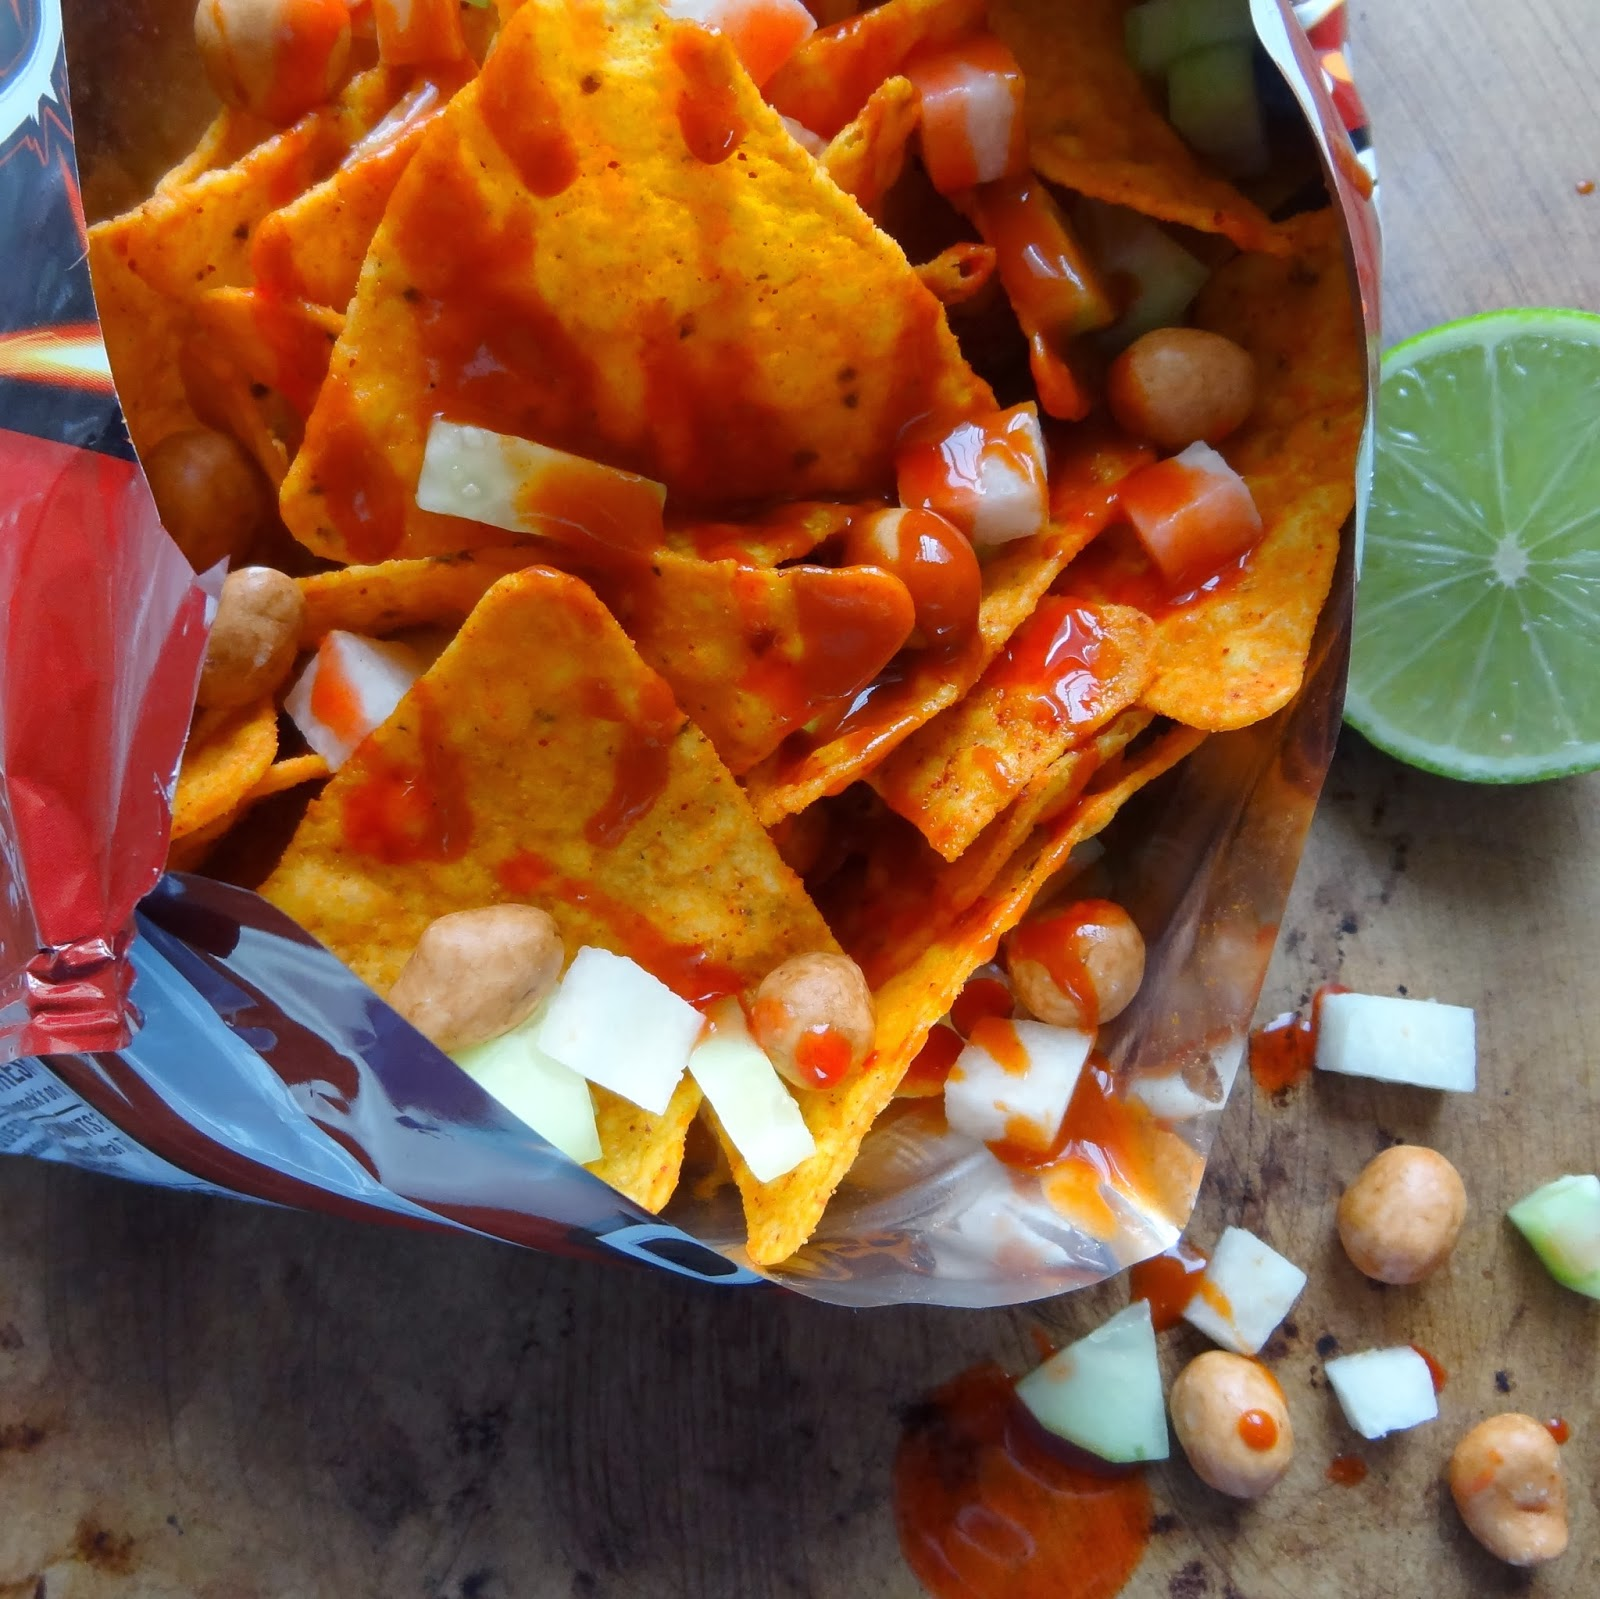 Miss Mochi S Adventures Dorilocos Tostilocos With Doritos Tostilocos is crazy healthy snack and now is here to your enjoyment! miss mochi s adventures blogger